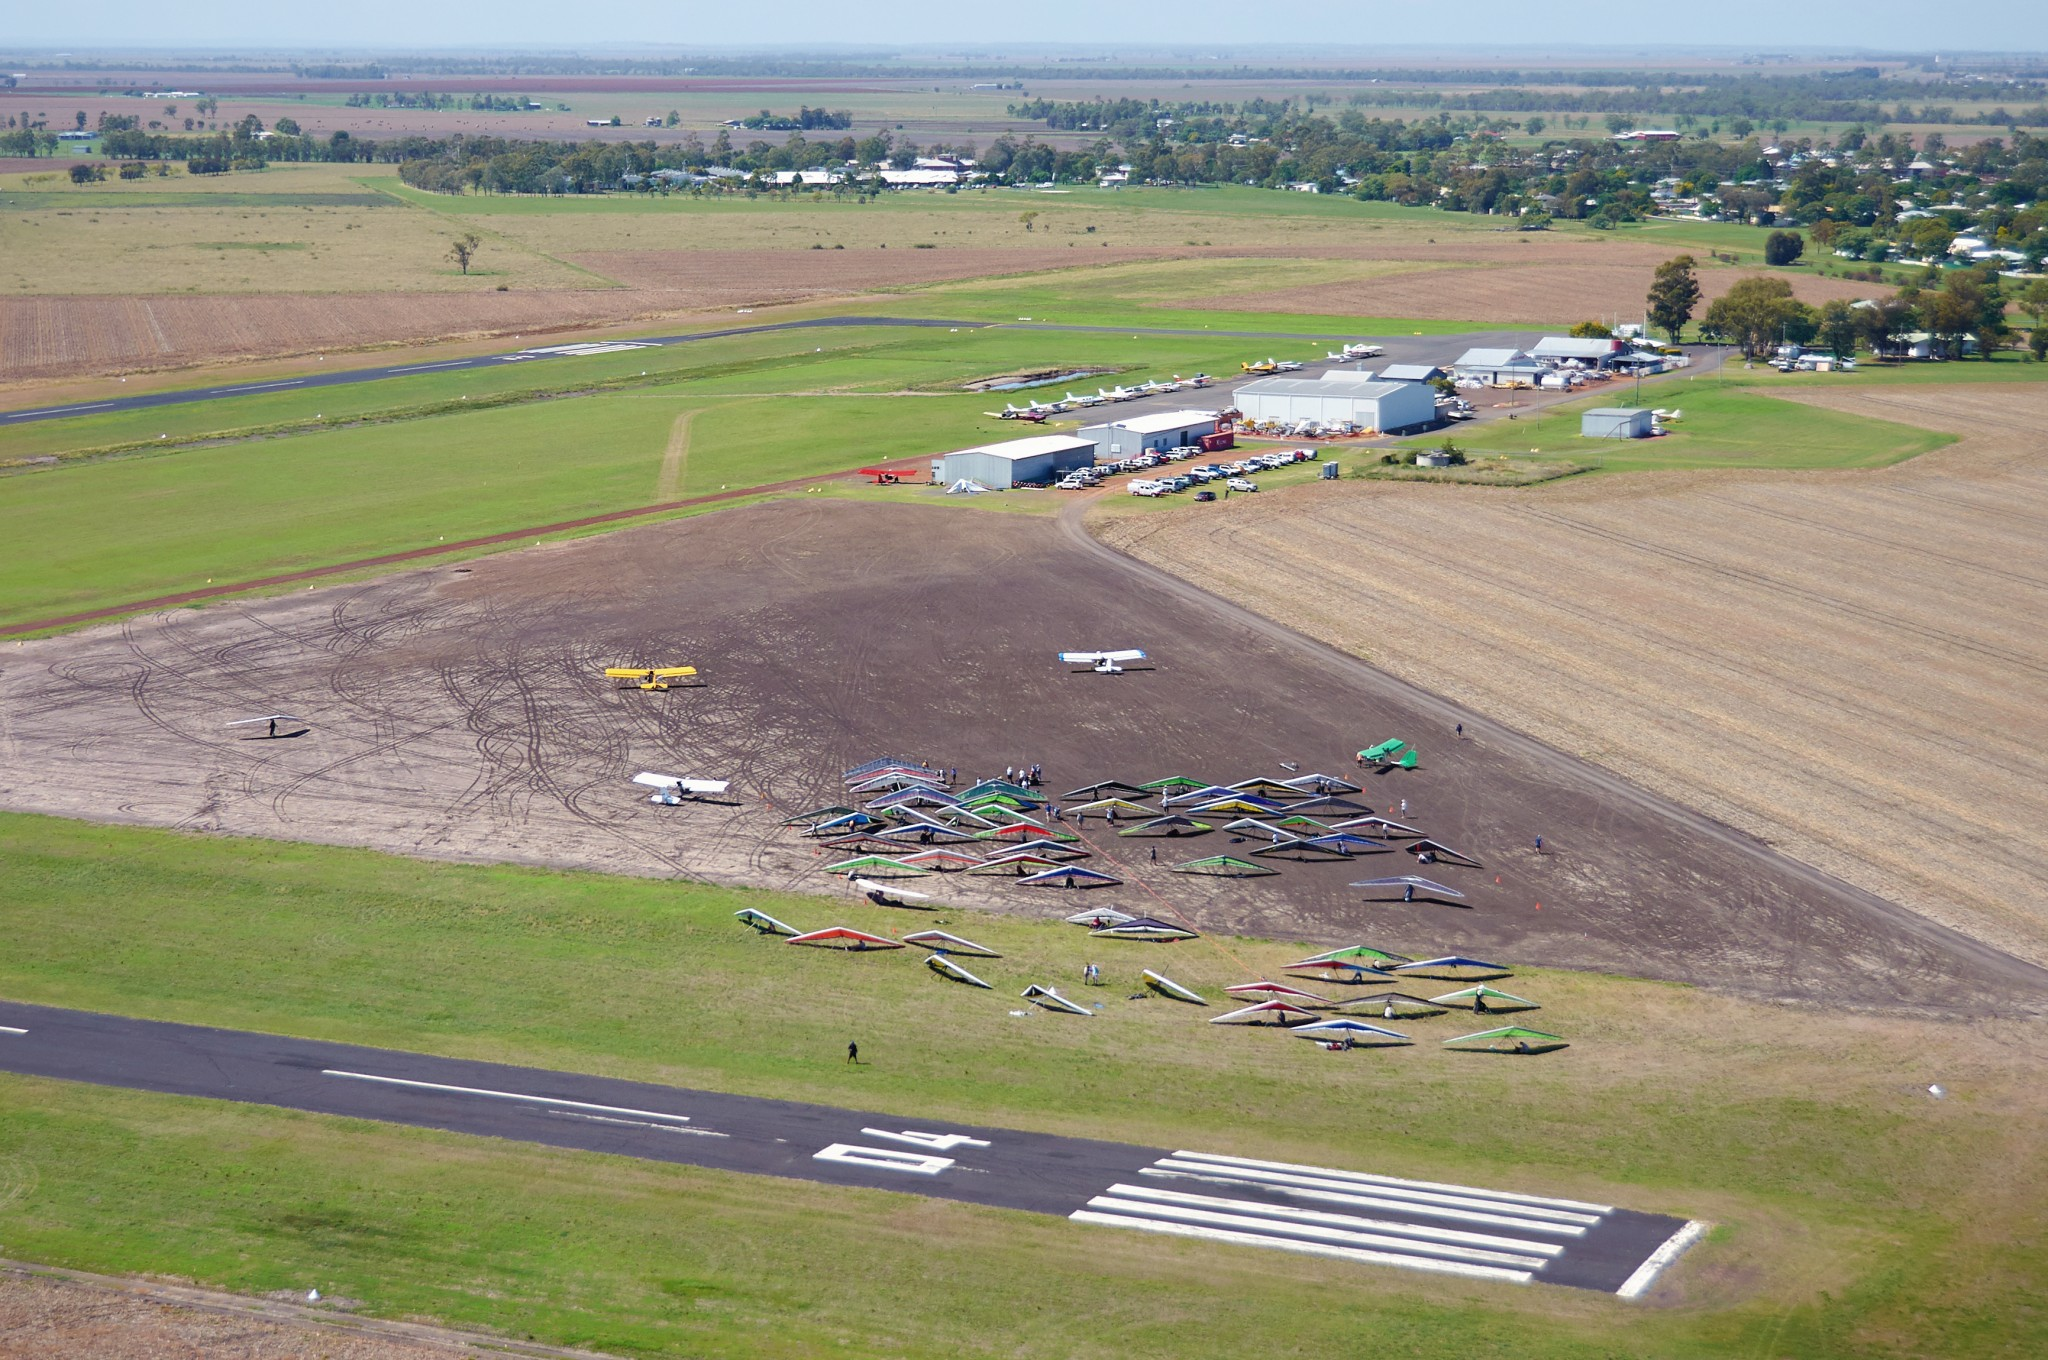 Dalby airport from above ~ Аэропорт Далби, вид сверху